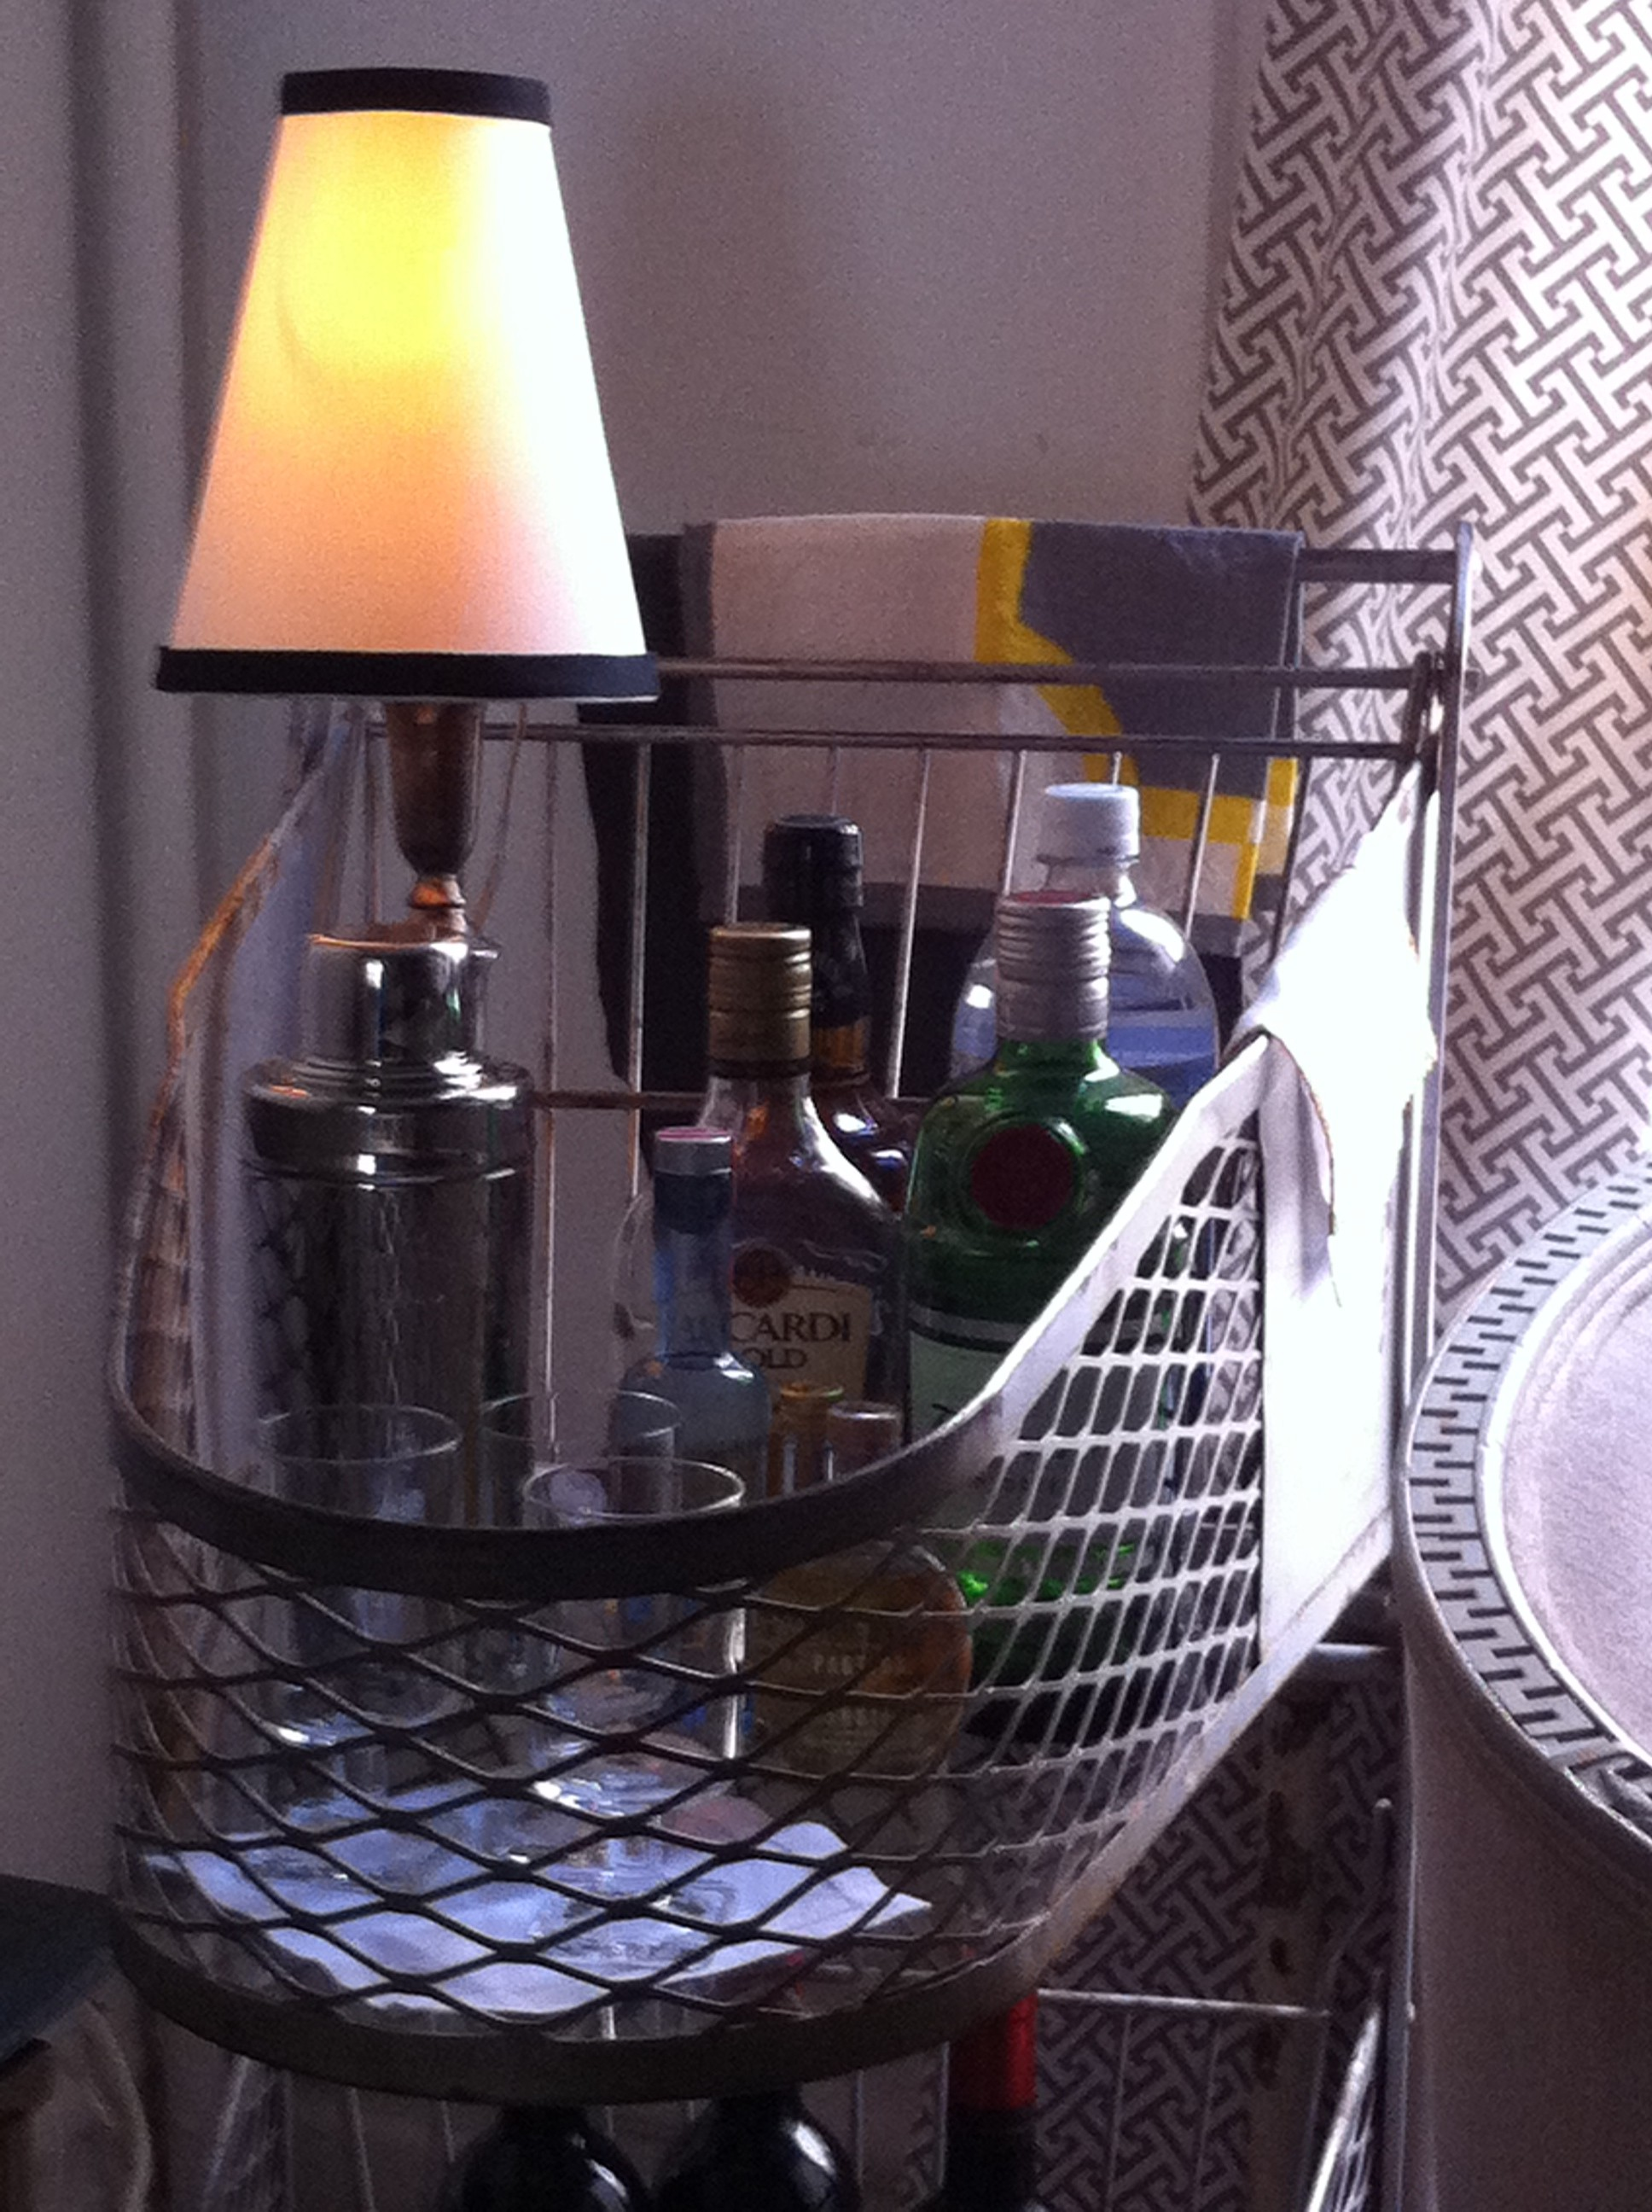 A close up shot of the top tier of repurposed bar cart